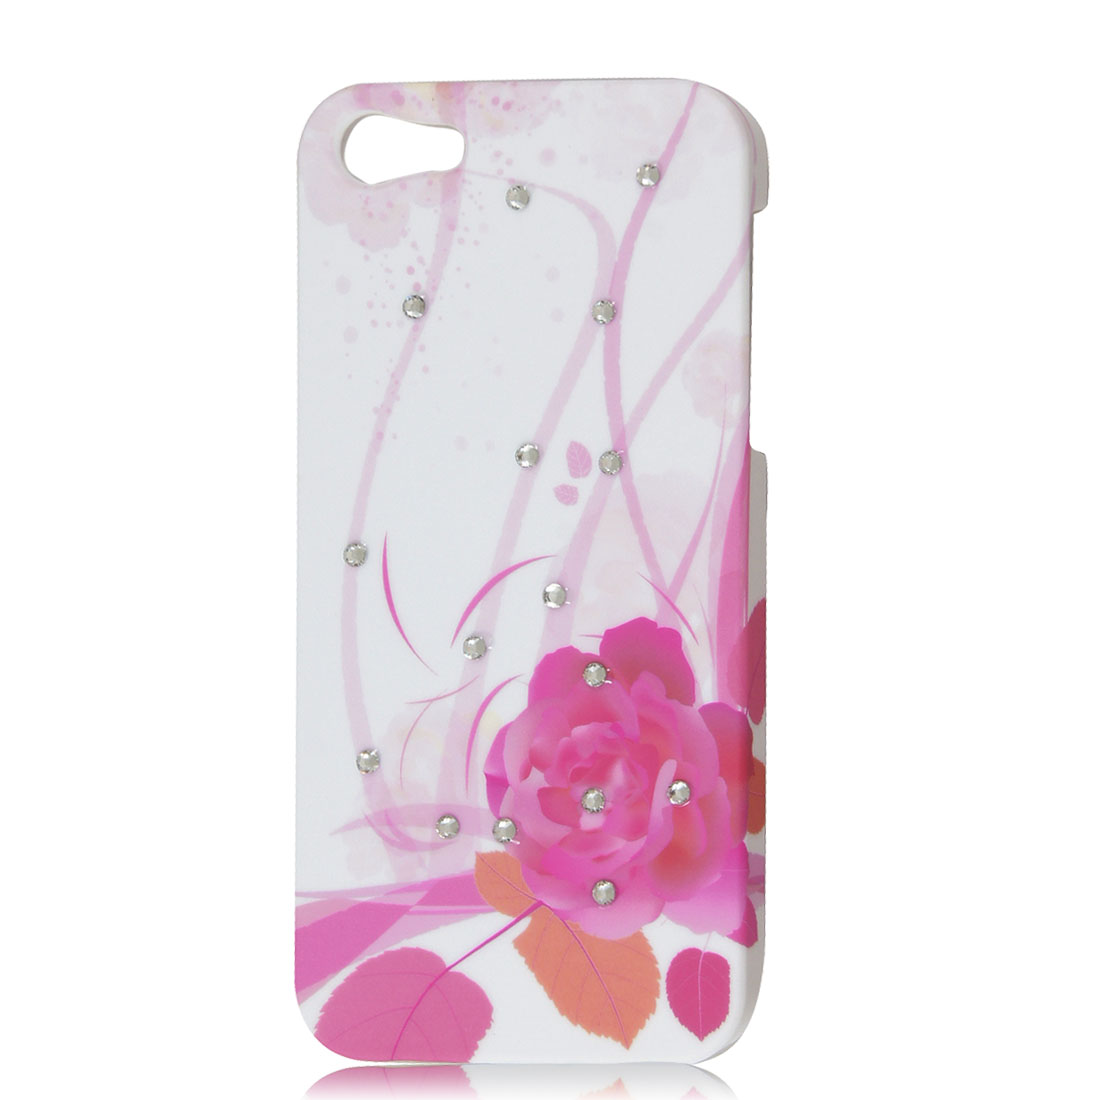 Pink Peony Flower Leaf Rhinestone Hard Back Case Cover White for iPhone 5 5G